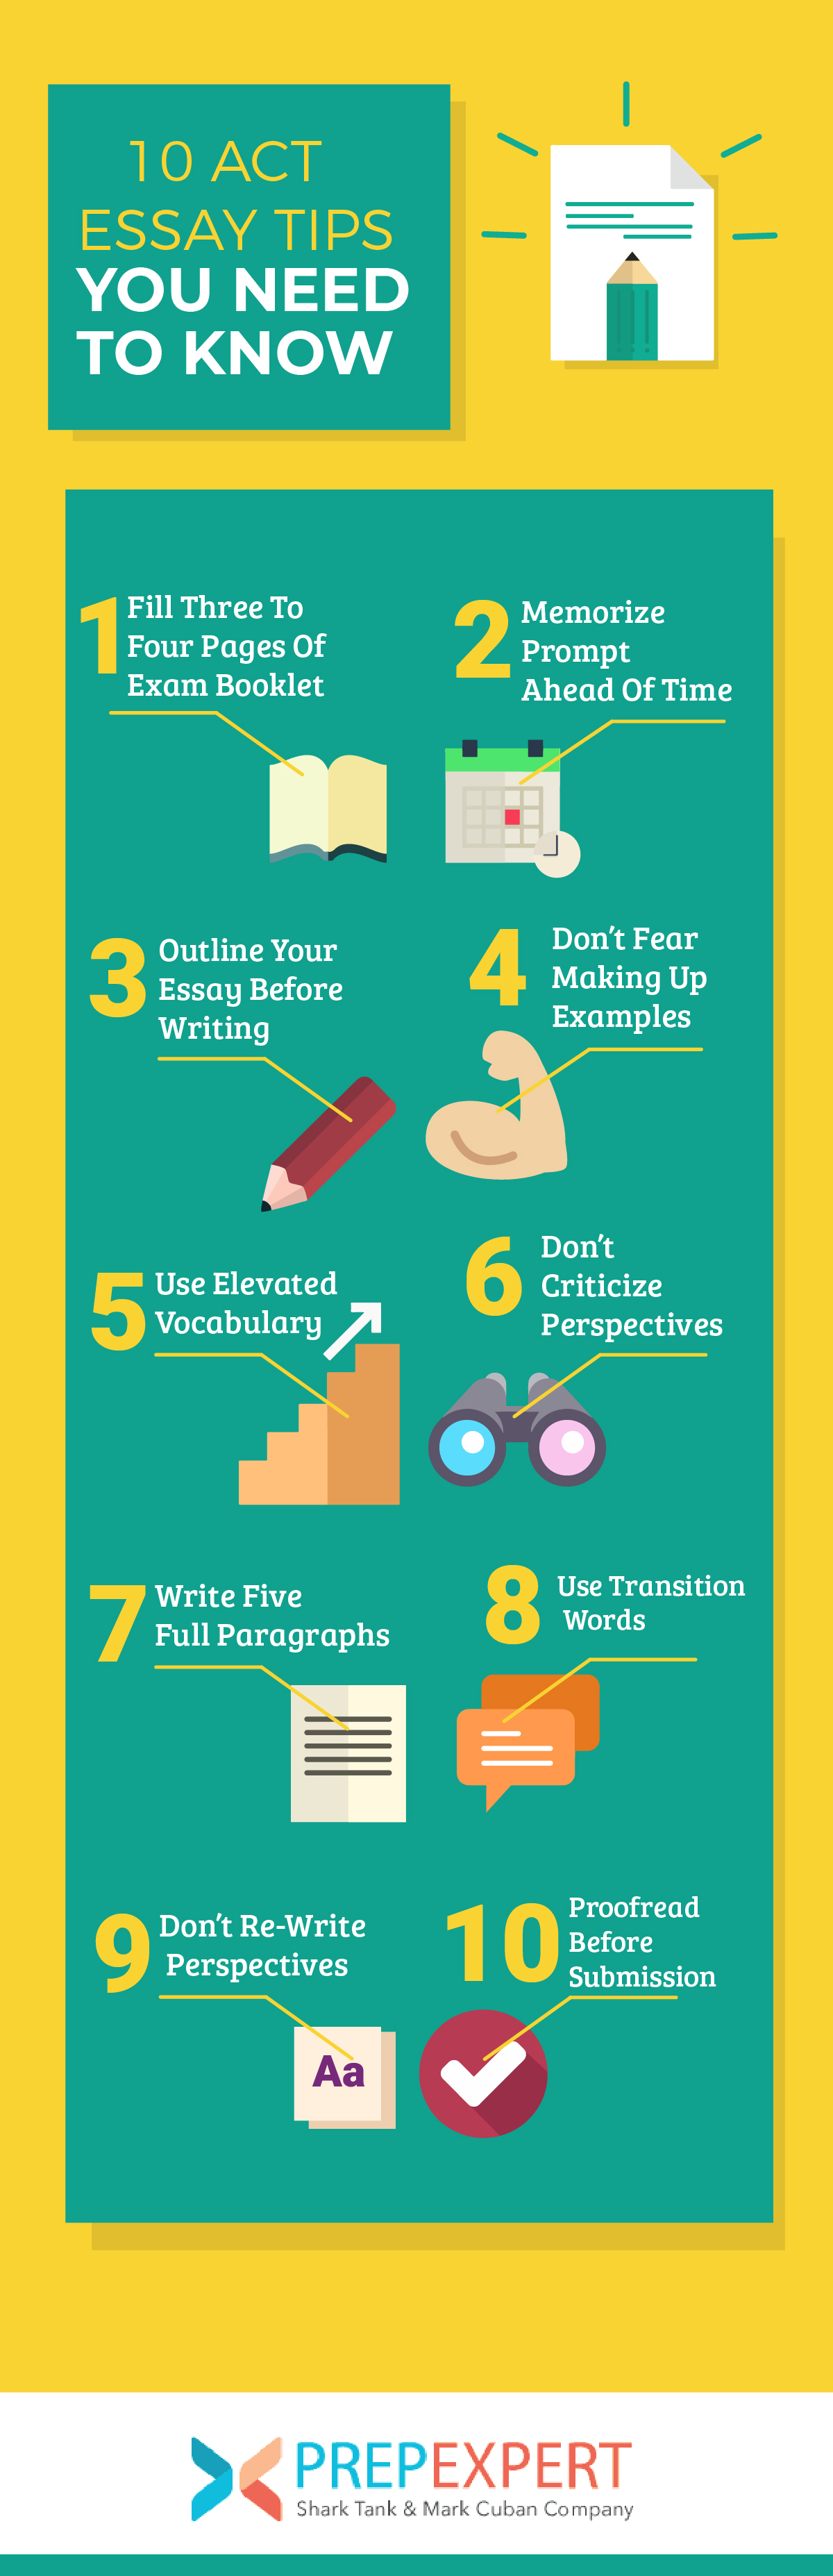 010 Essay Example 235585 Essayinfographics 052918 How To Write Wonderful Act And Scene Number In A New Killer Pdf Full